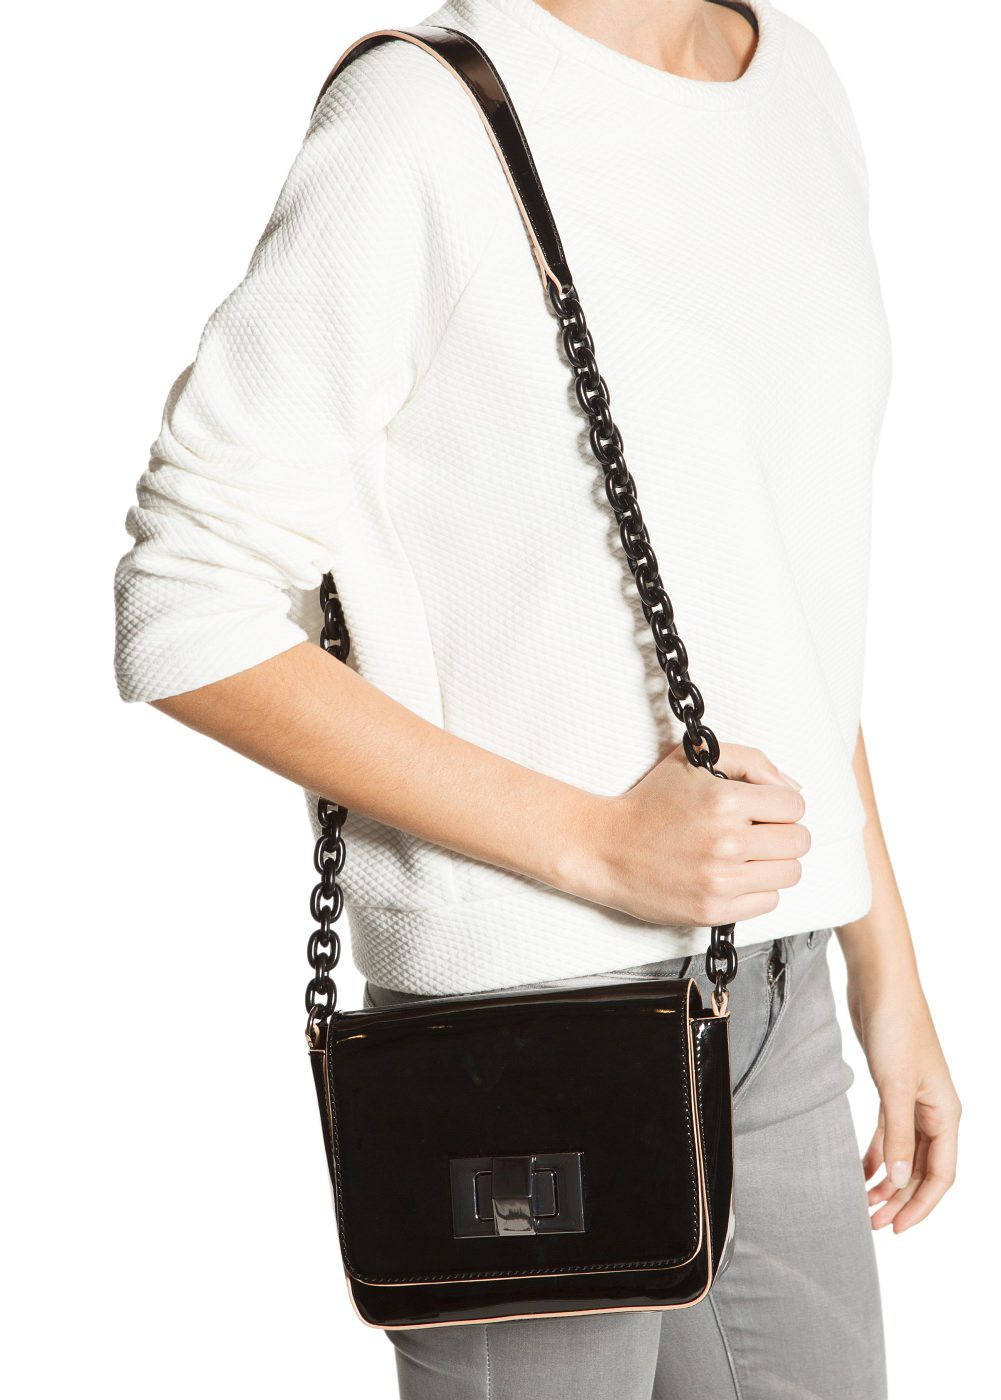 Patent cross body bag